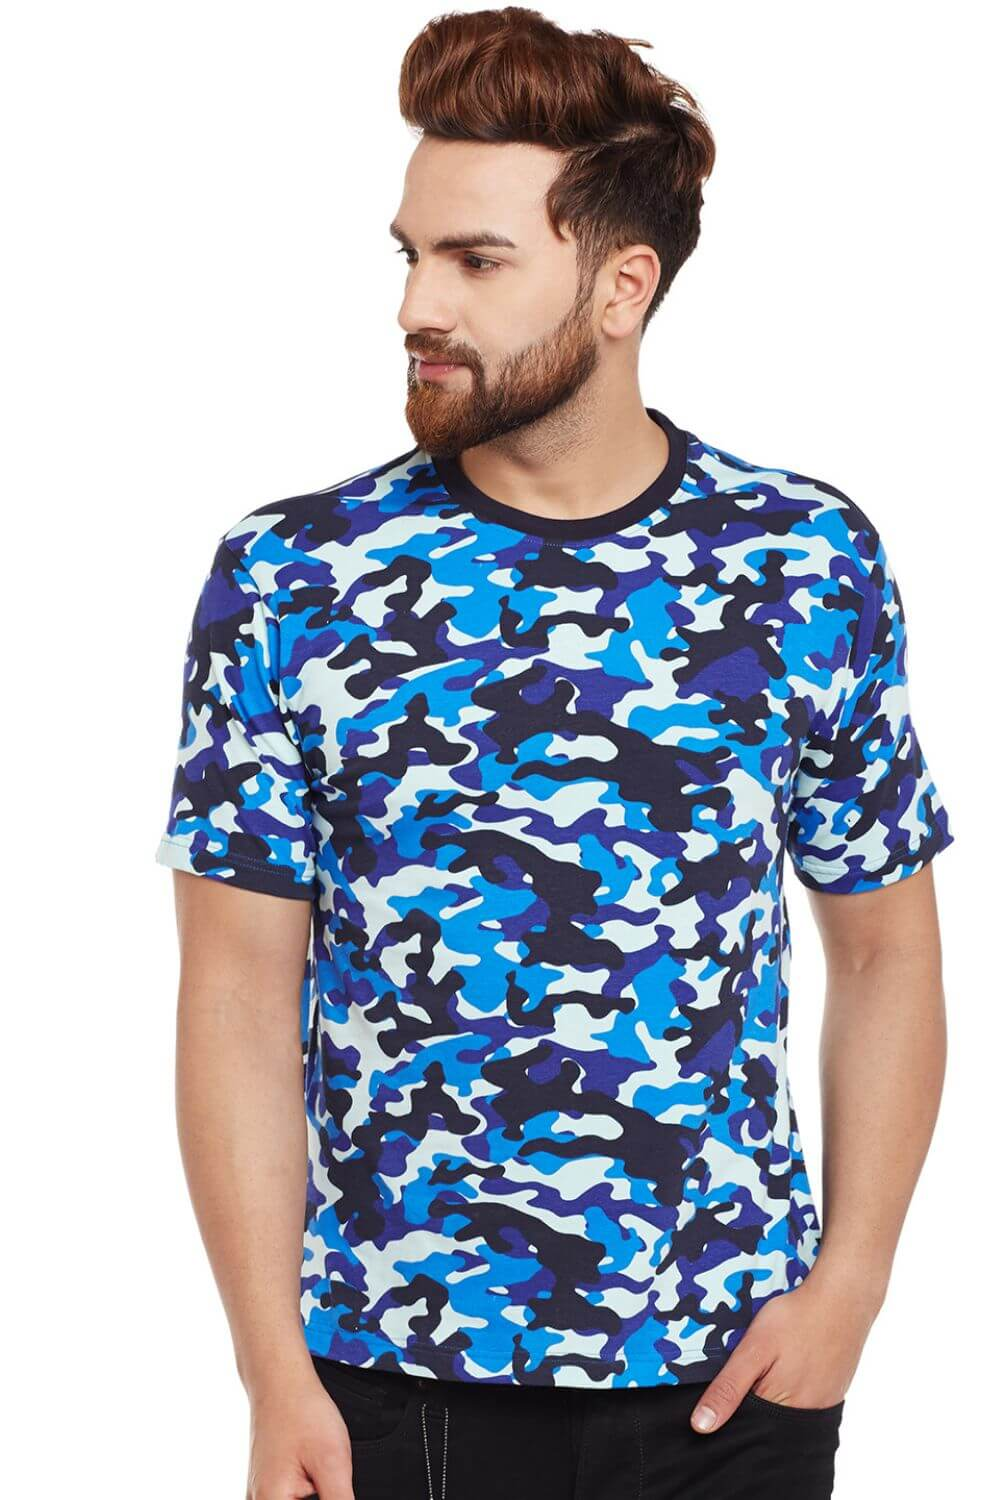 Visavi men camouflage t-shirt - blue